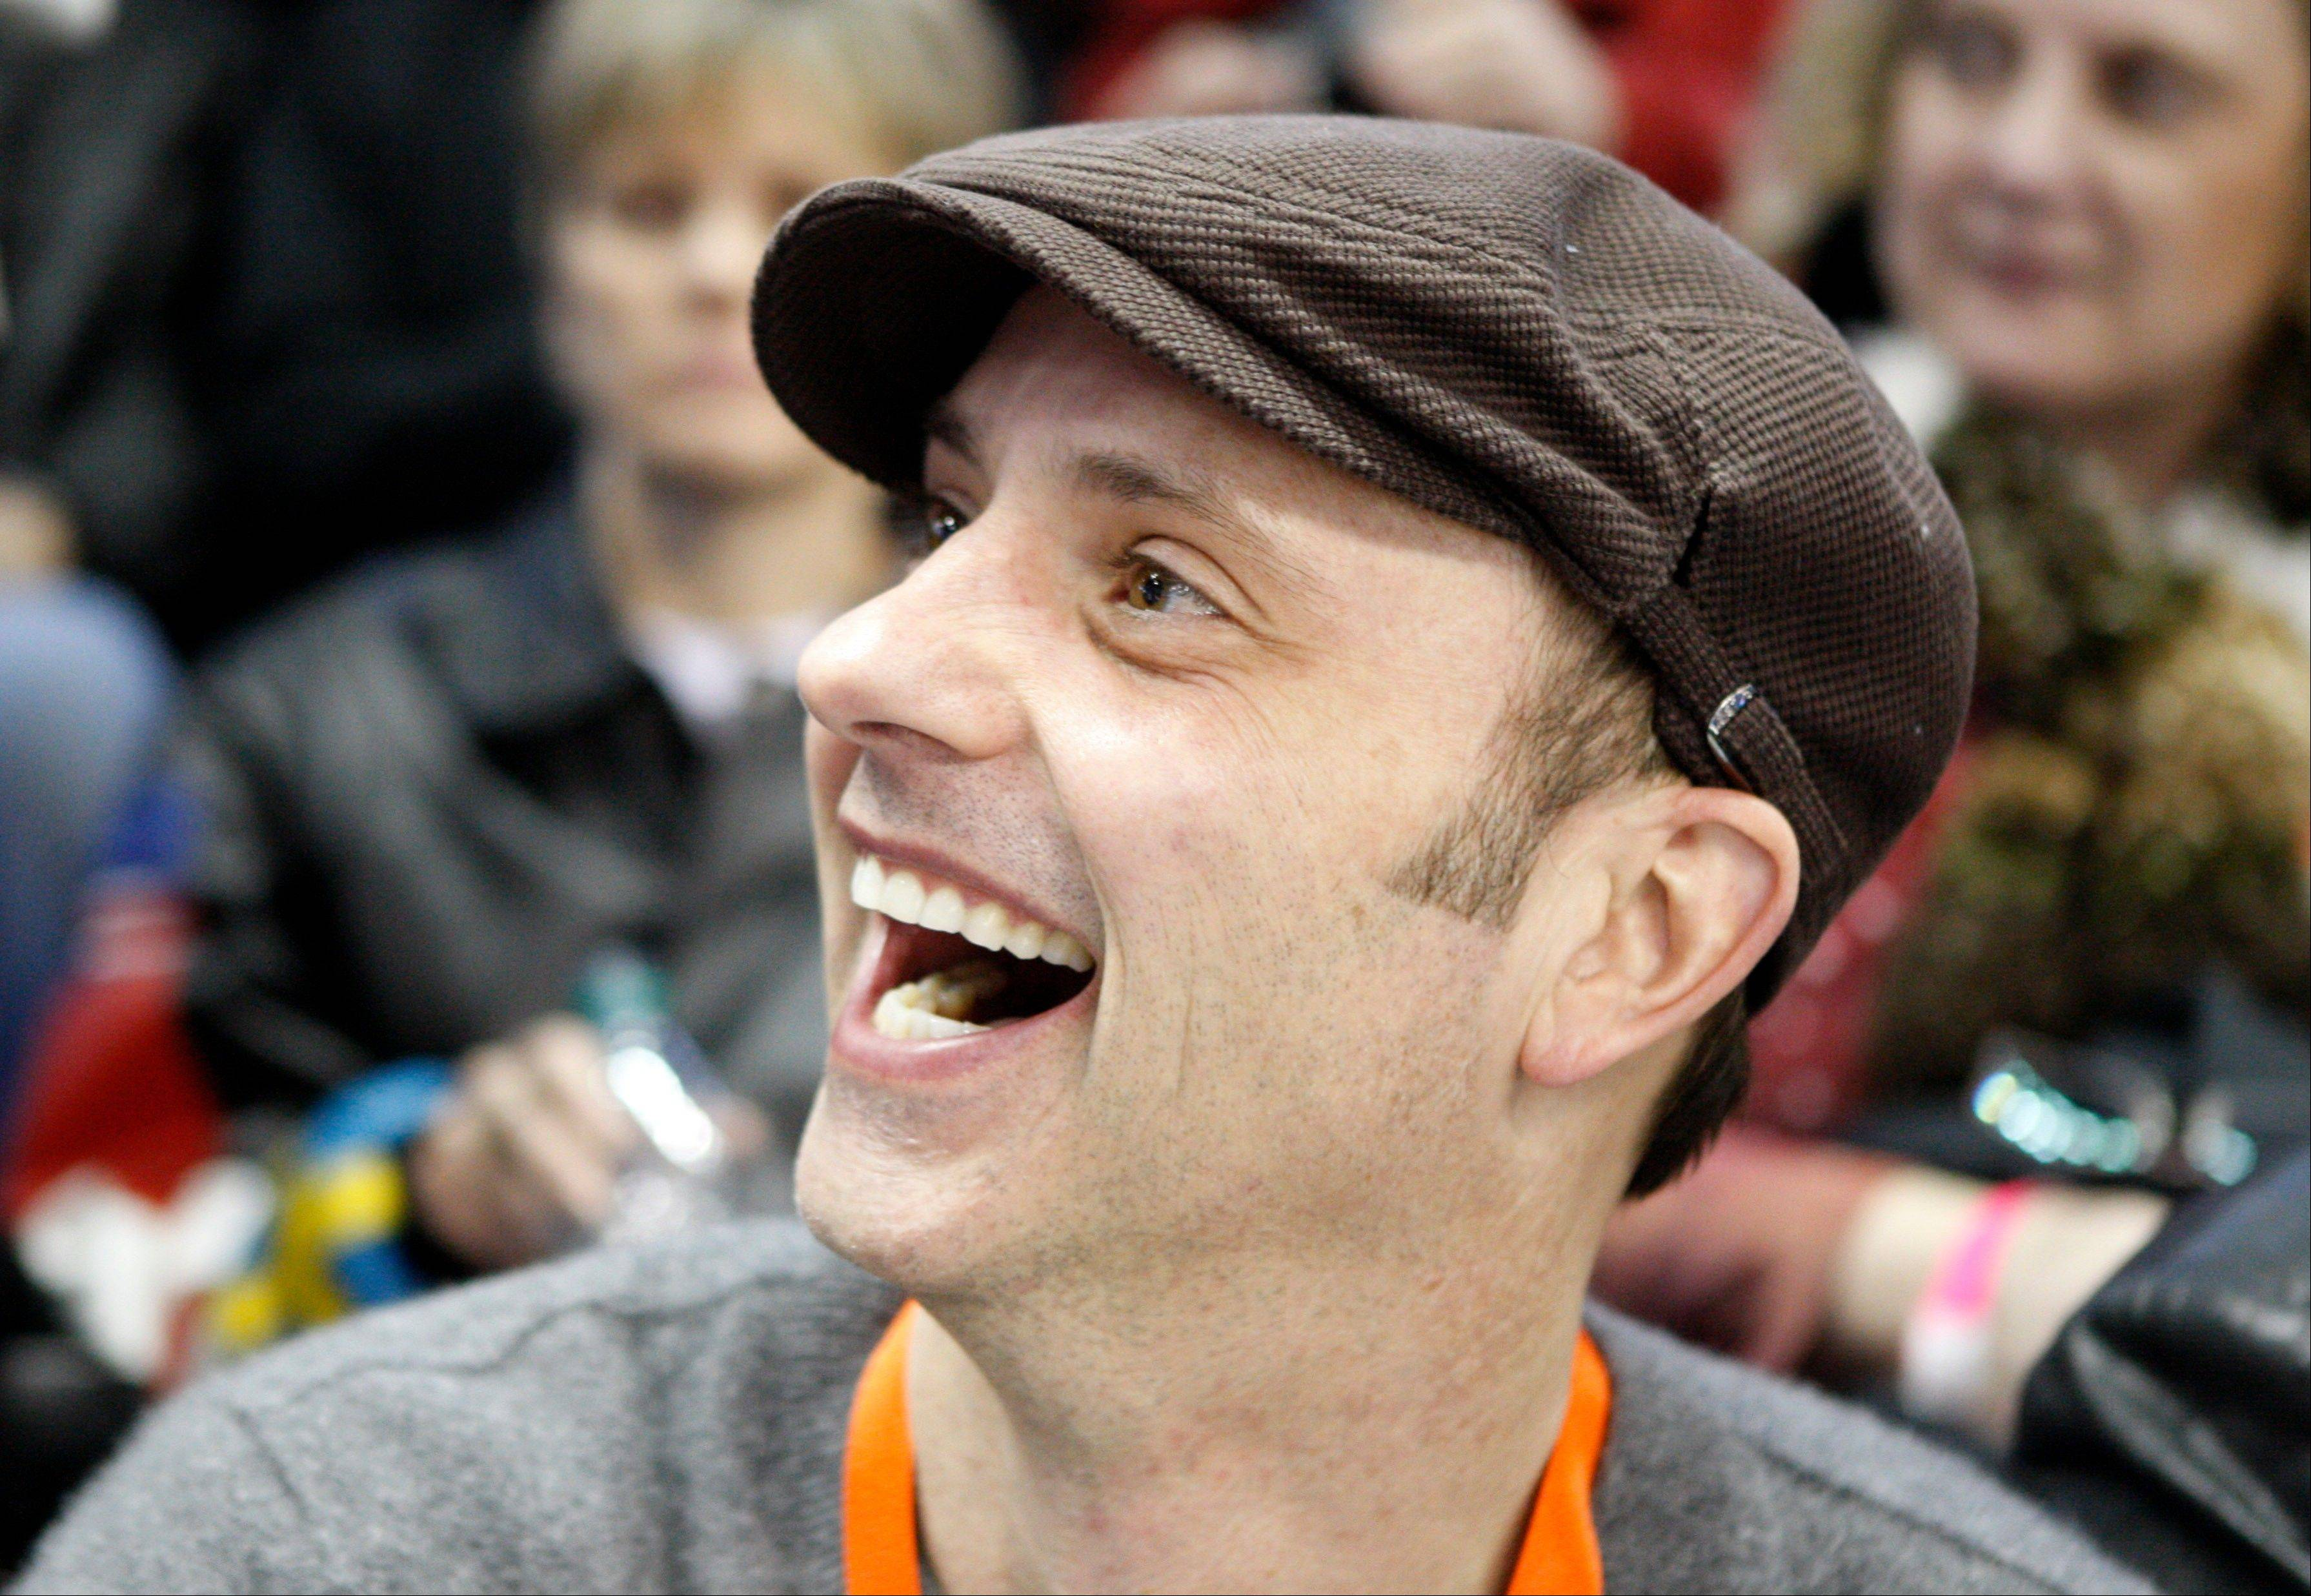 "Former Olympian Brian Boitano, two days after being named to the U.S. delegation for Sochi, announced he is gay. But the 1988 gold medalist said Thursday in a statement that ""being gay is just one part of who I am. ... I hope we can remain focused on the Olympic spirit which celebrates achievement in sport by peoples of all nations."""